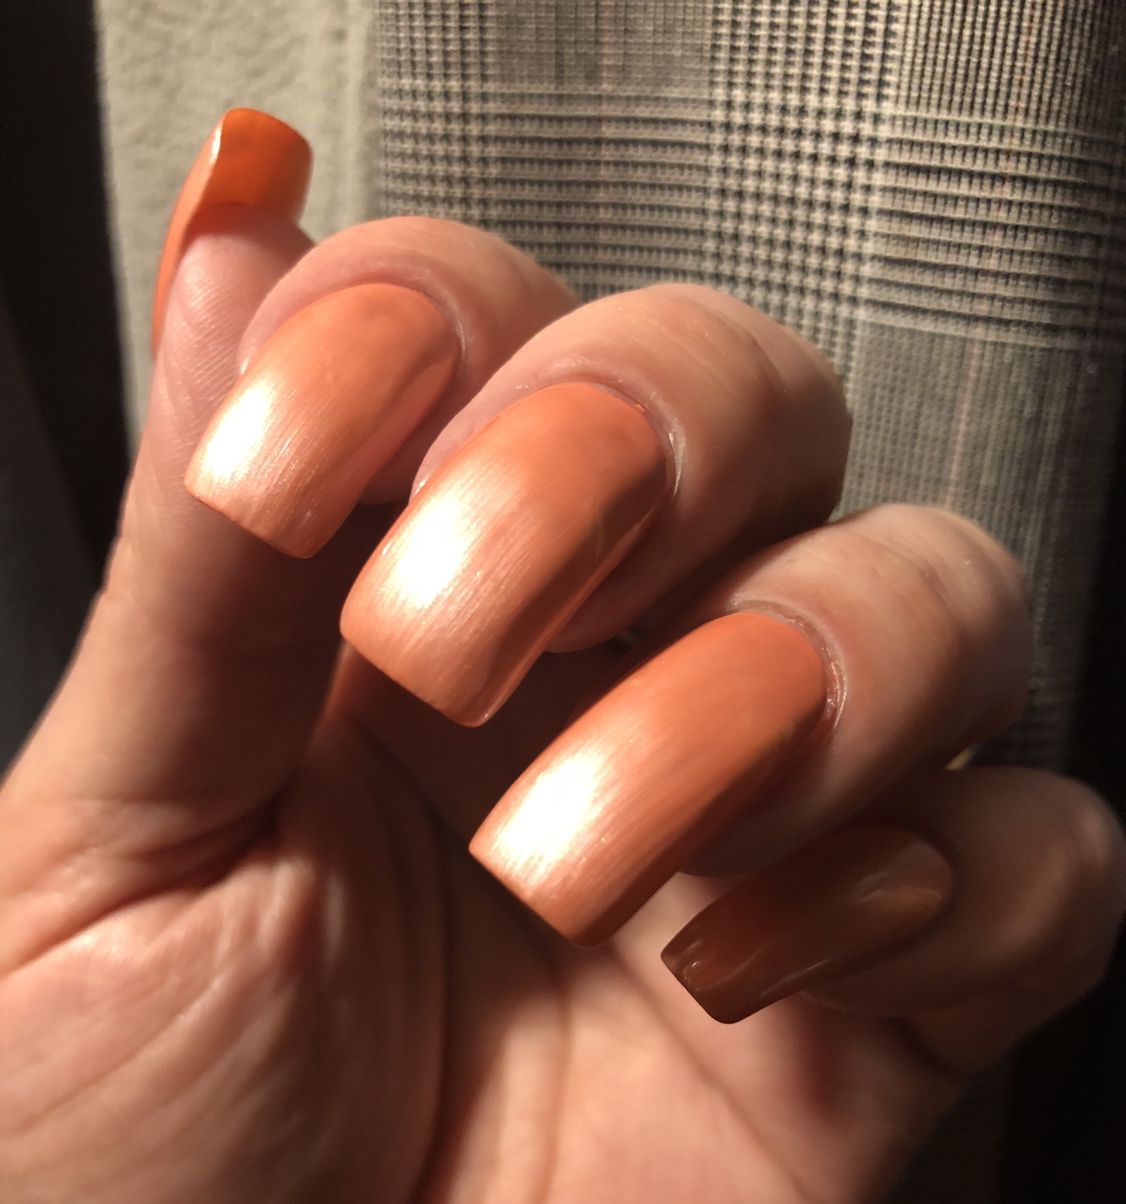 Pin on My sexy nails